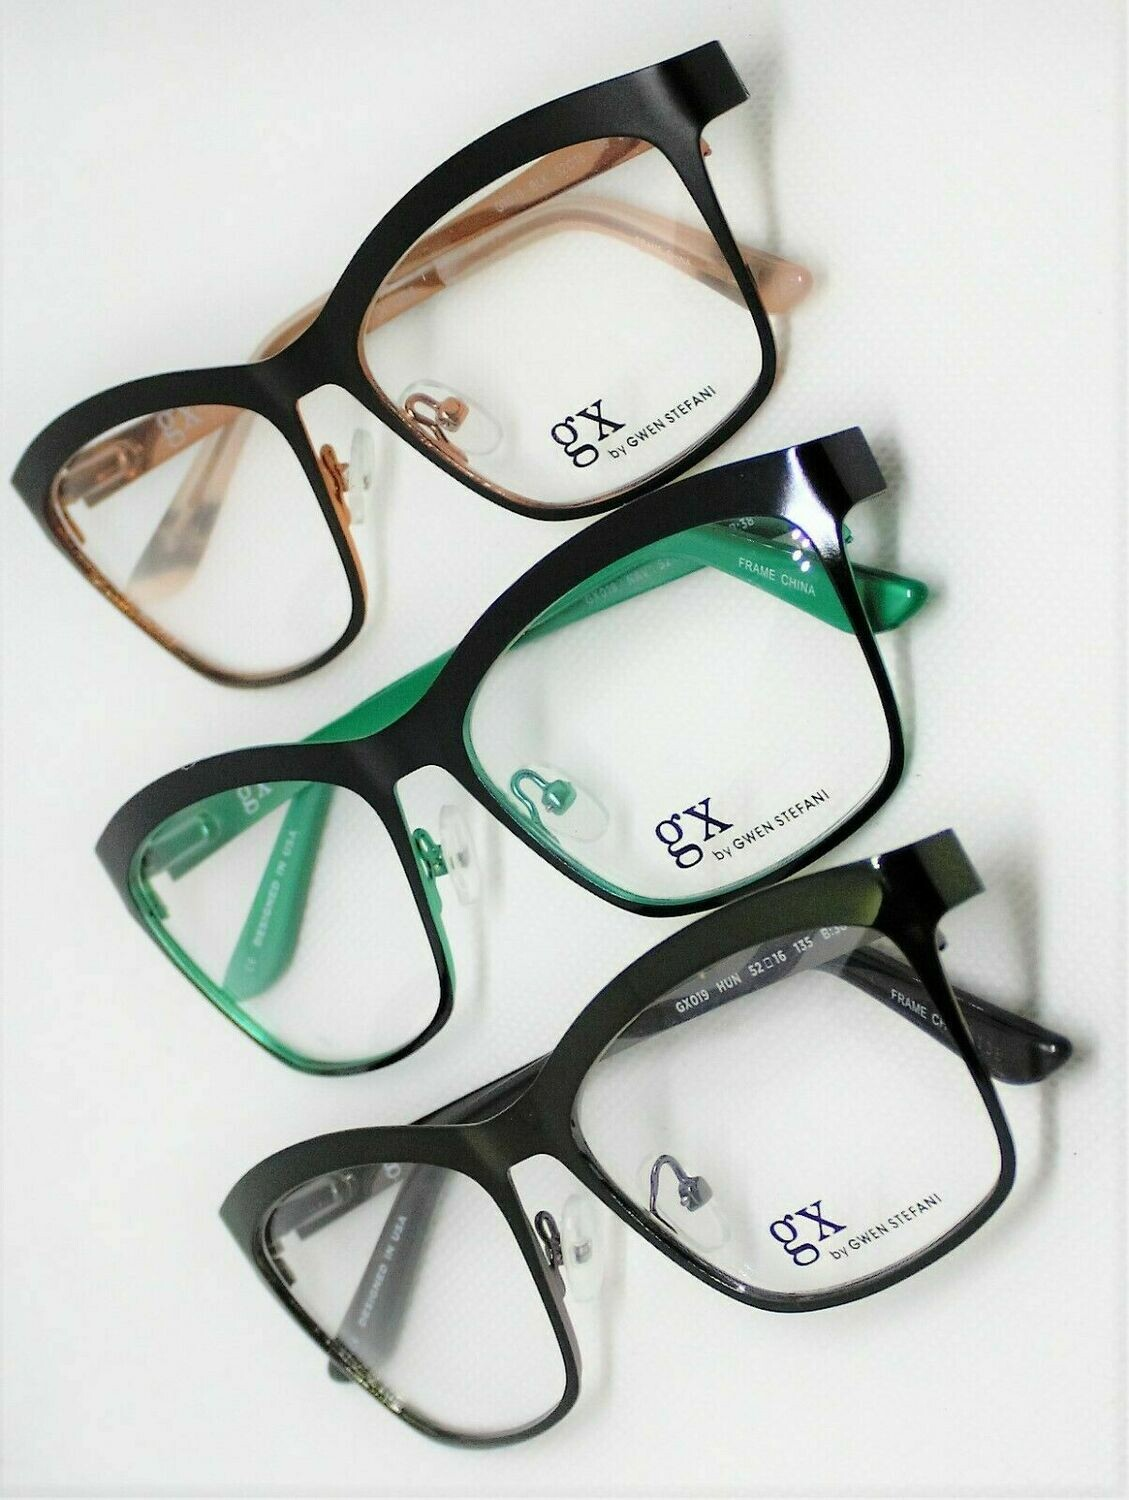 3 Pair GX019 Gwen Stefani eyeglass frames 3 Colors 52-16-135 Authentic and New